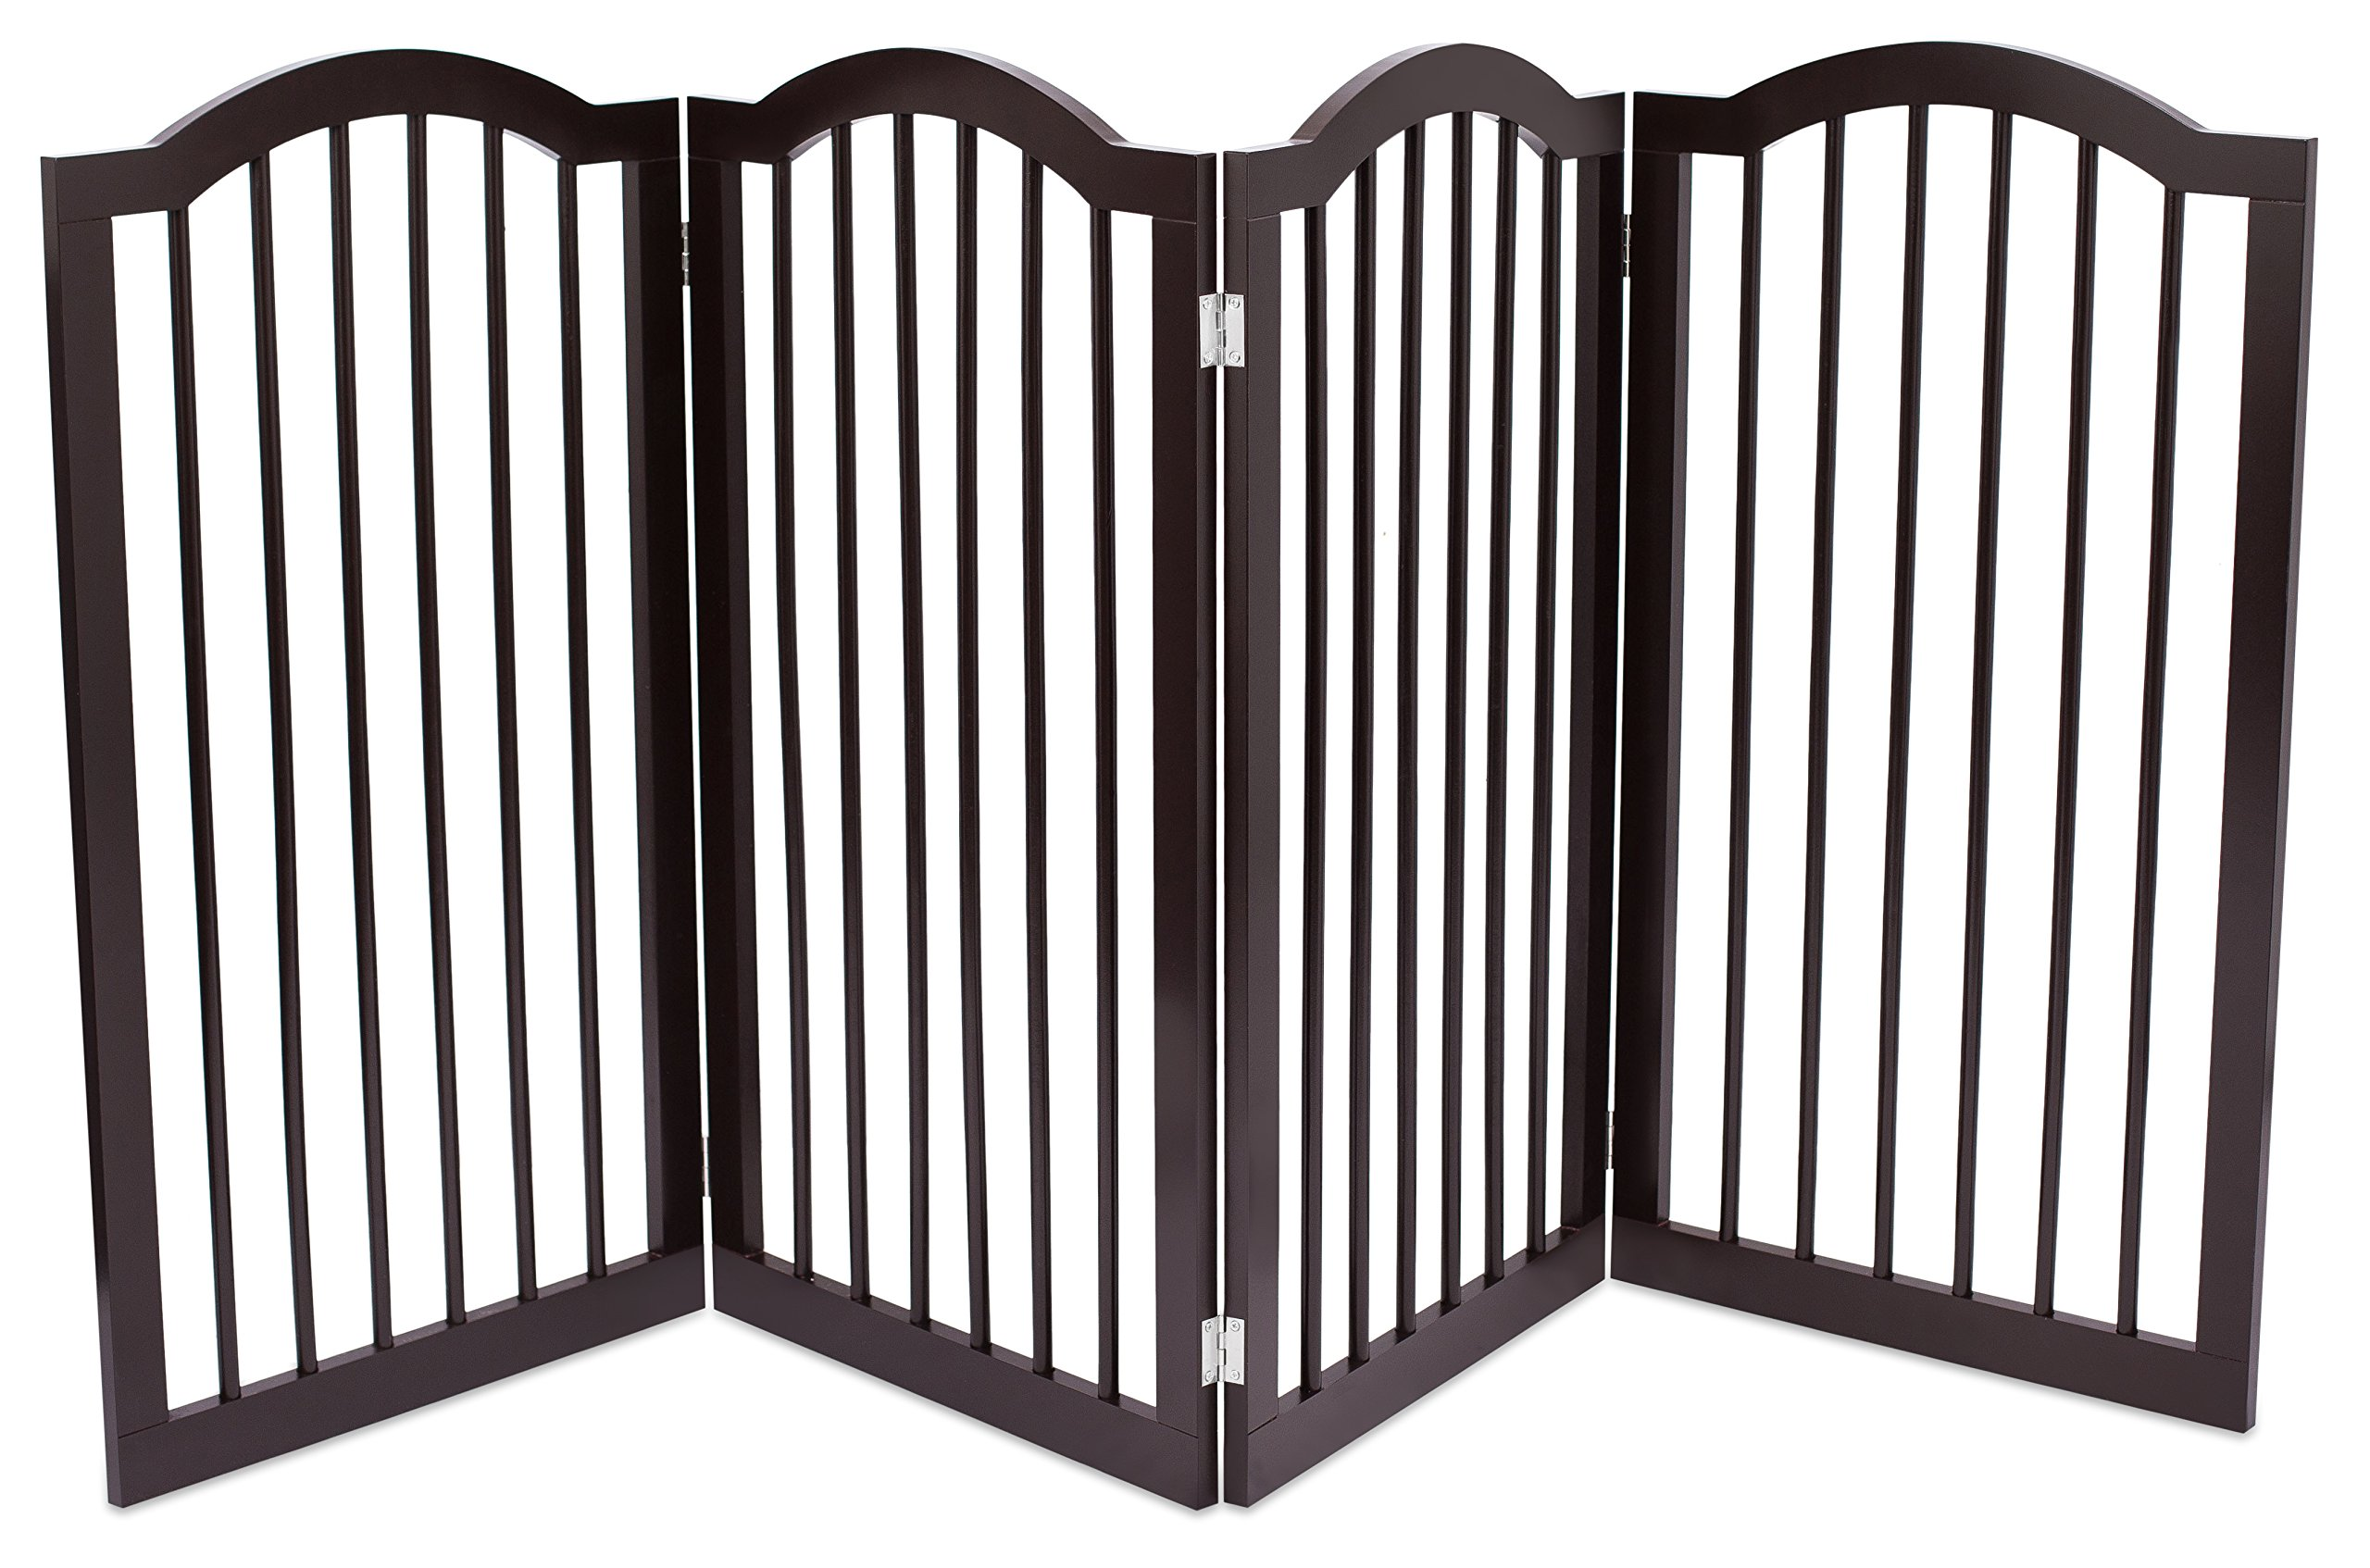 Internet's Best Pet Gate with Arched Top | 4 Panel | 36 Inch Tall Fence | Free Standing Folding Z Shape Indoor Doorway Hall Stairs Dog Puppy Gate | Fully Assembled | Espresso | Wooden